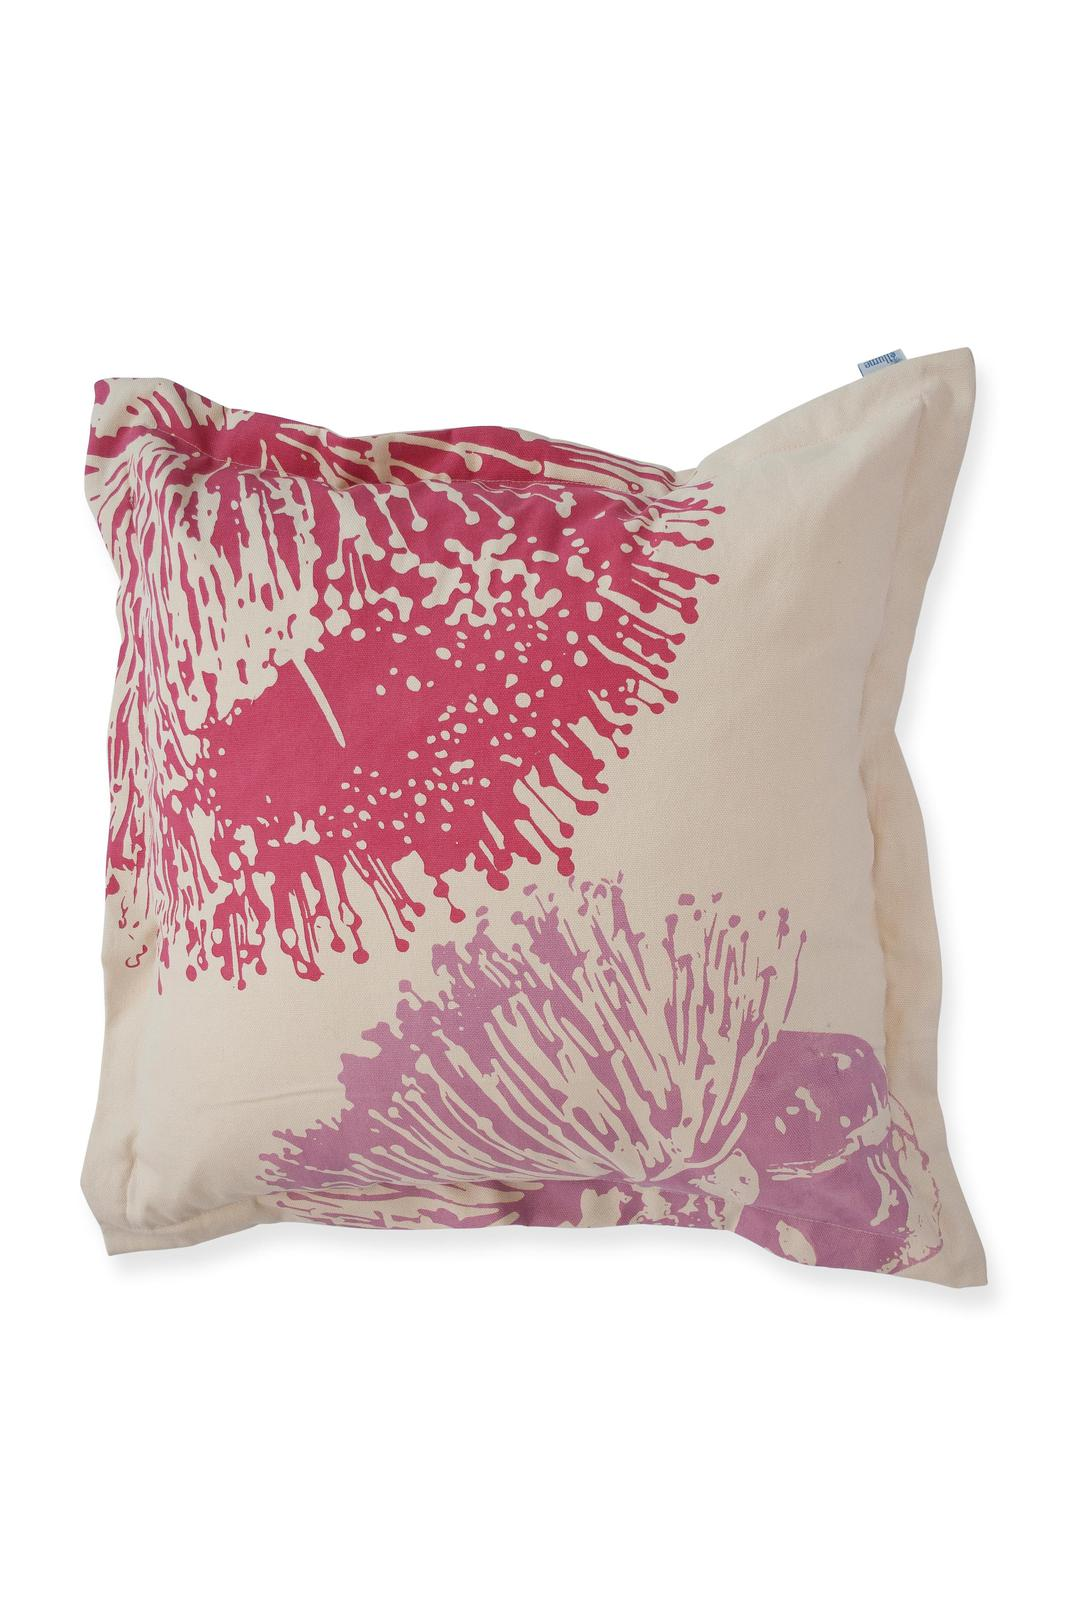 50cm Cushion 'Mallee Blossom' in Fuchsia & Lilac with flange